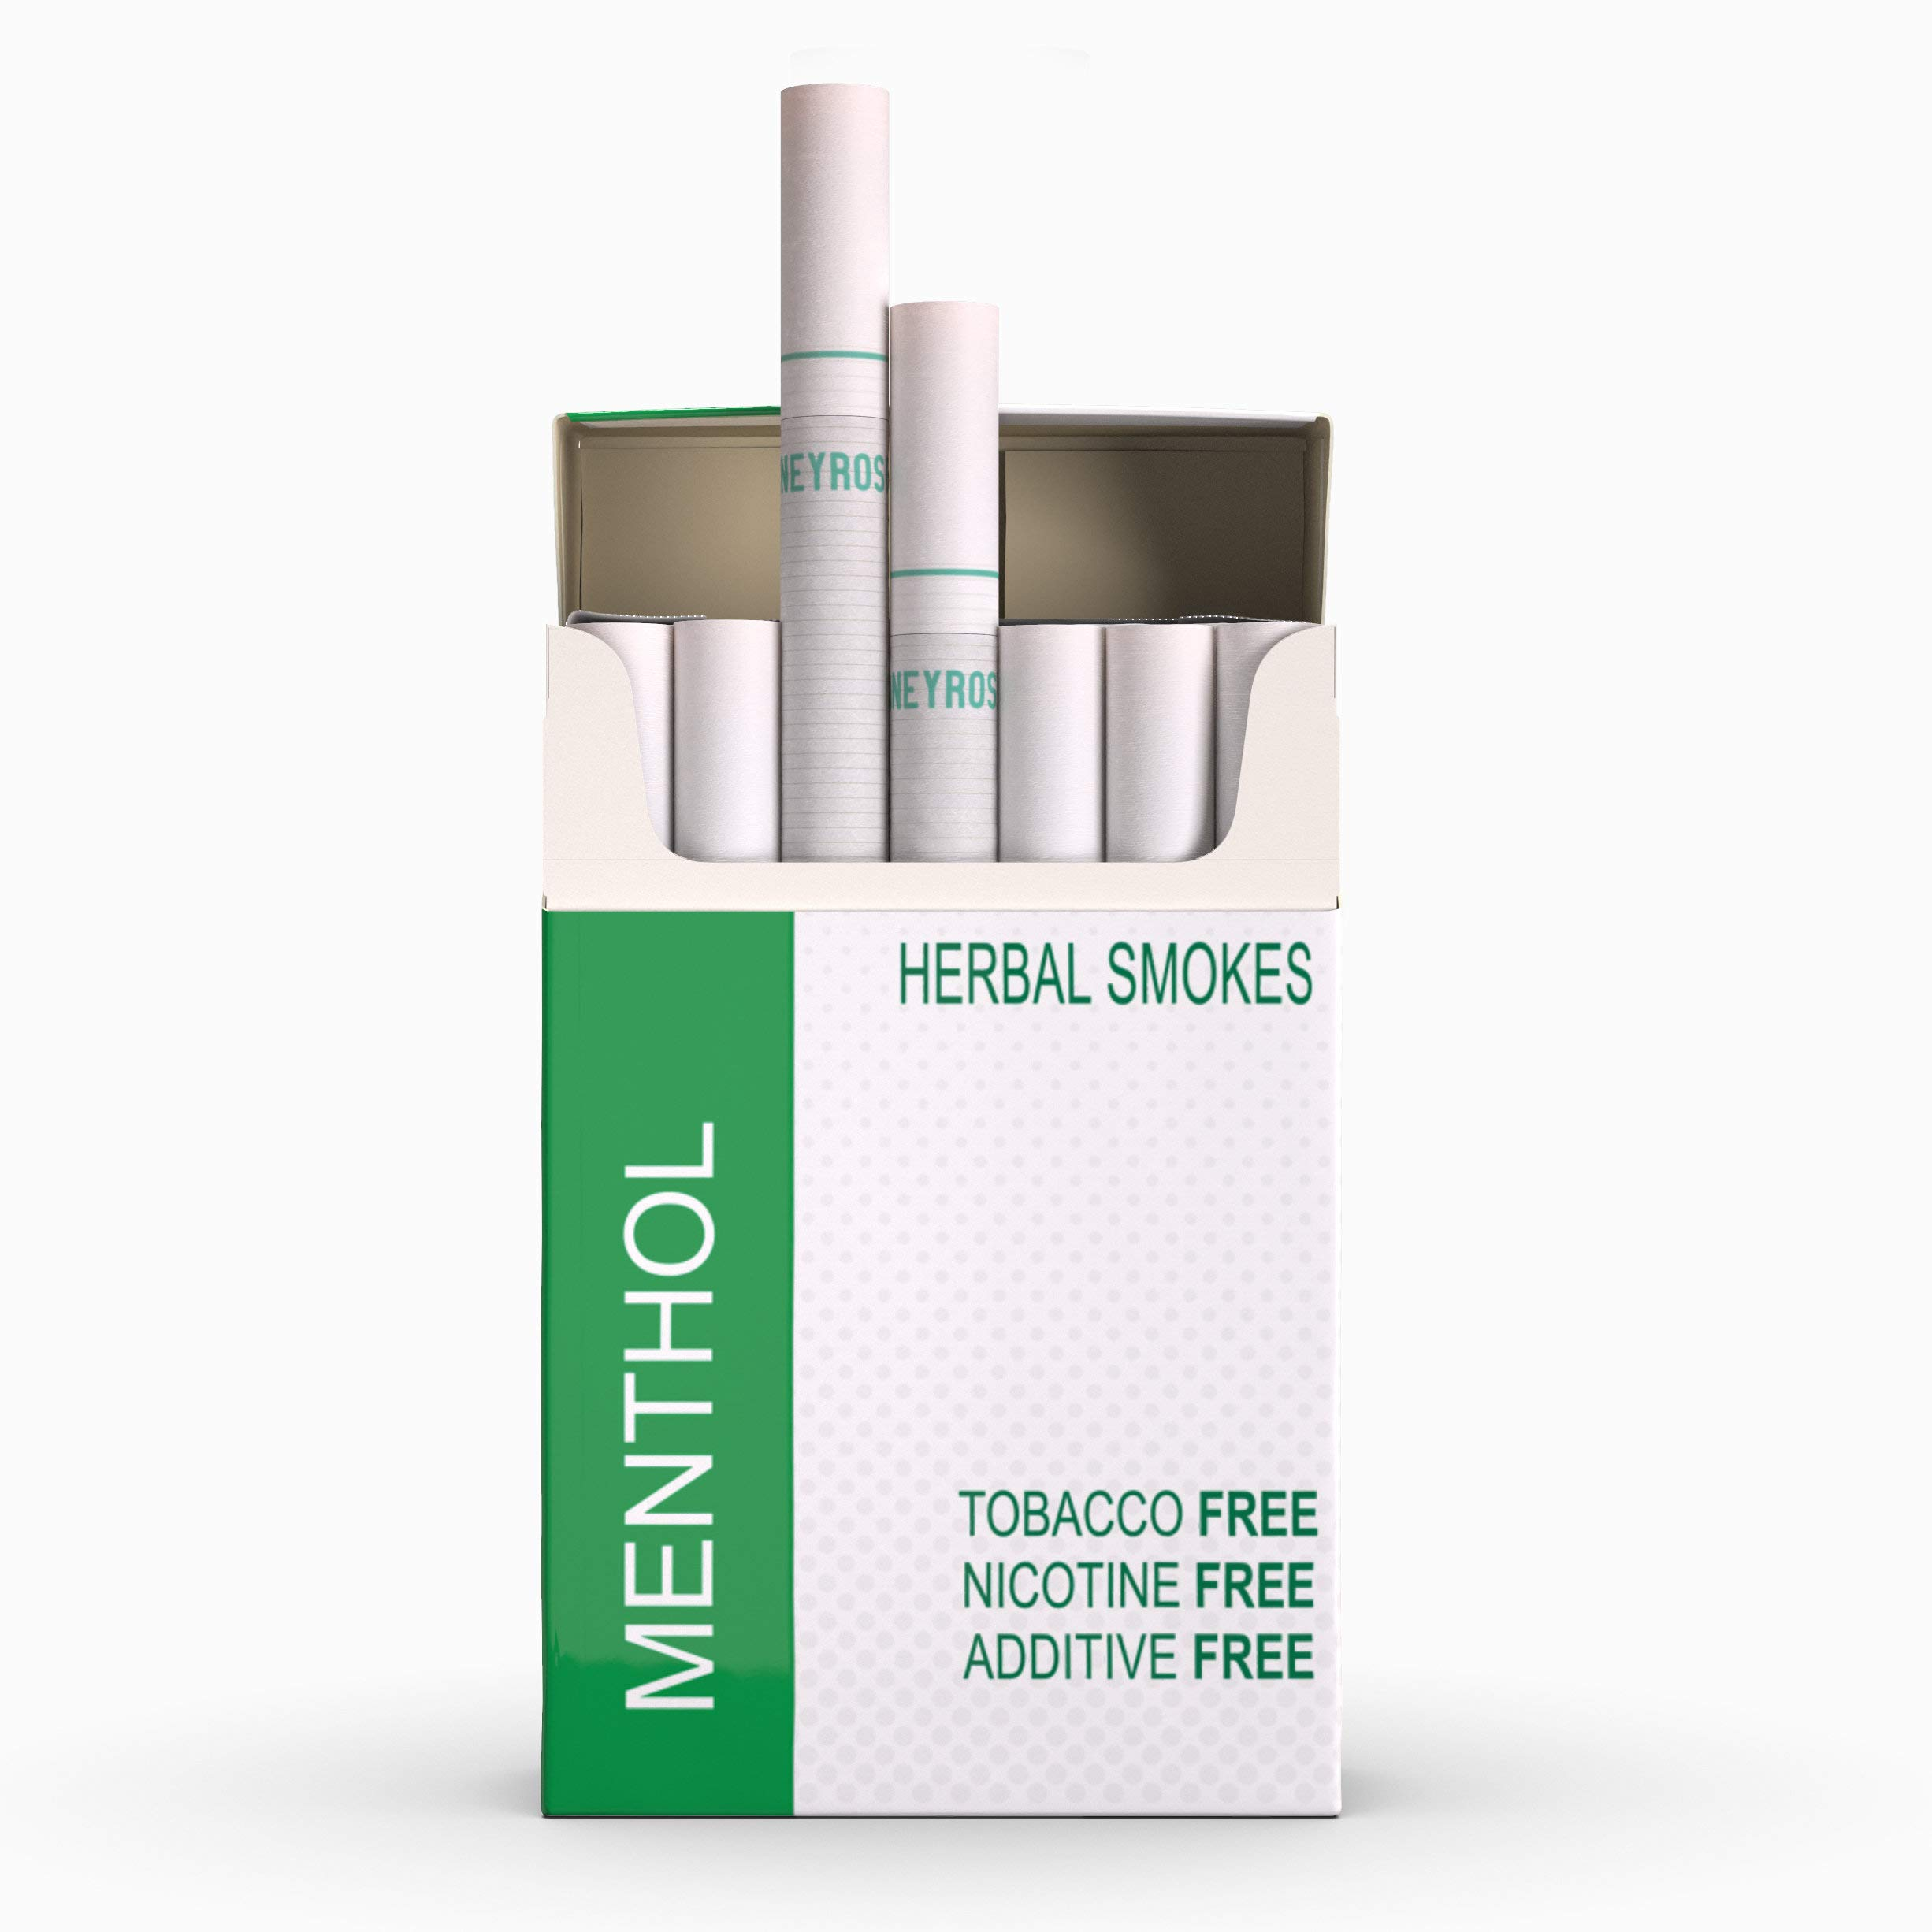 Honeyrose Menthol - Tobacco & Nicotine Free Herbal Cigarettes, 100% Natural, Made in England